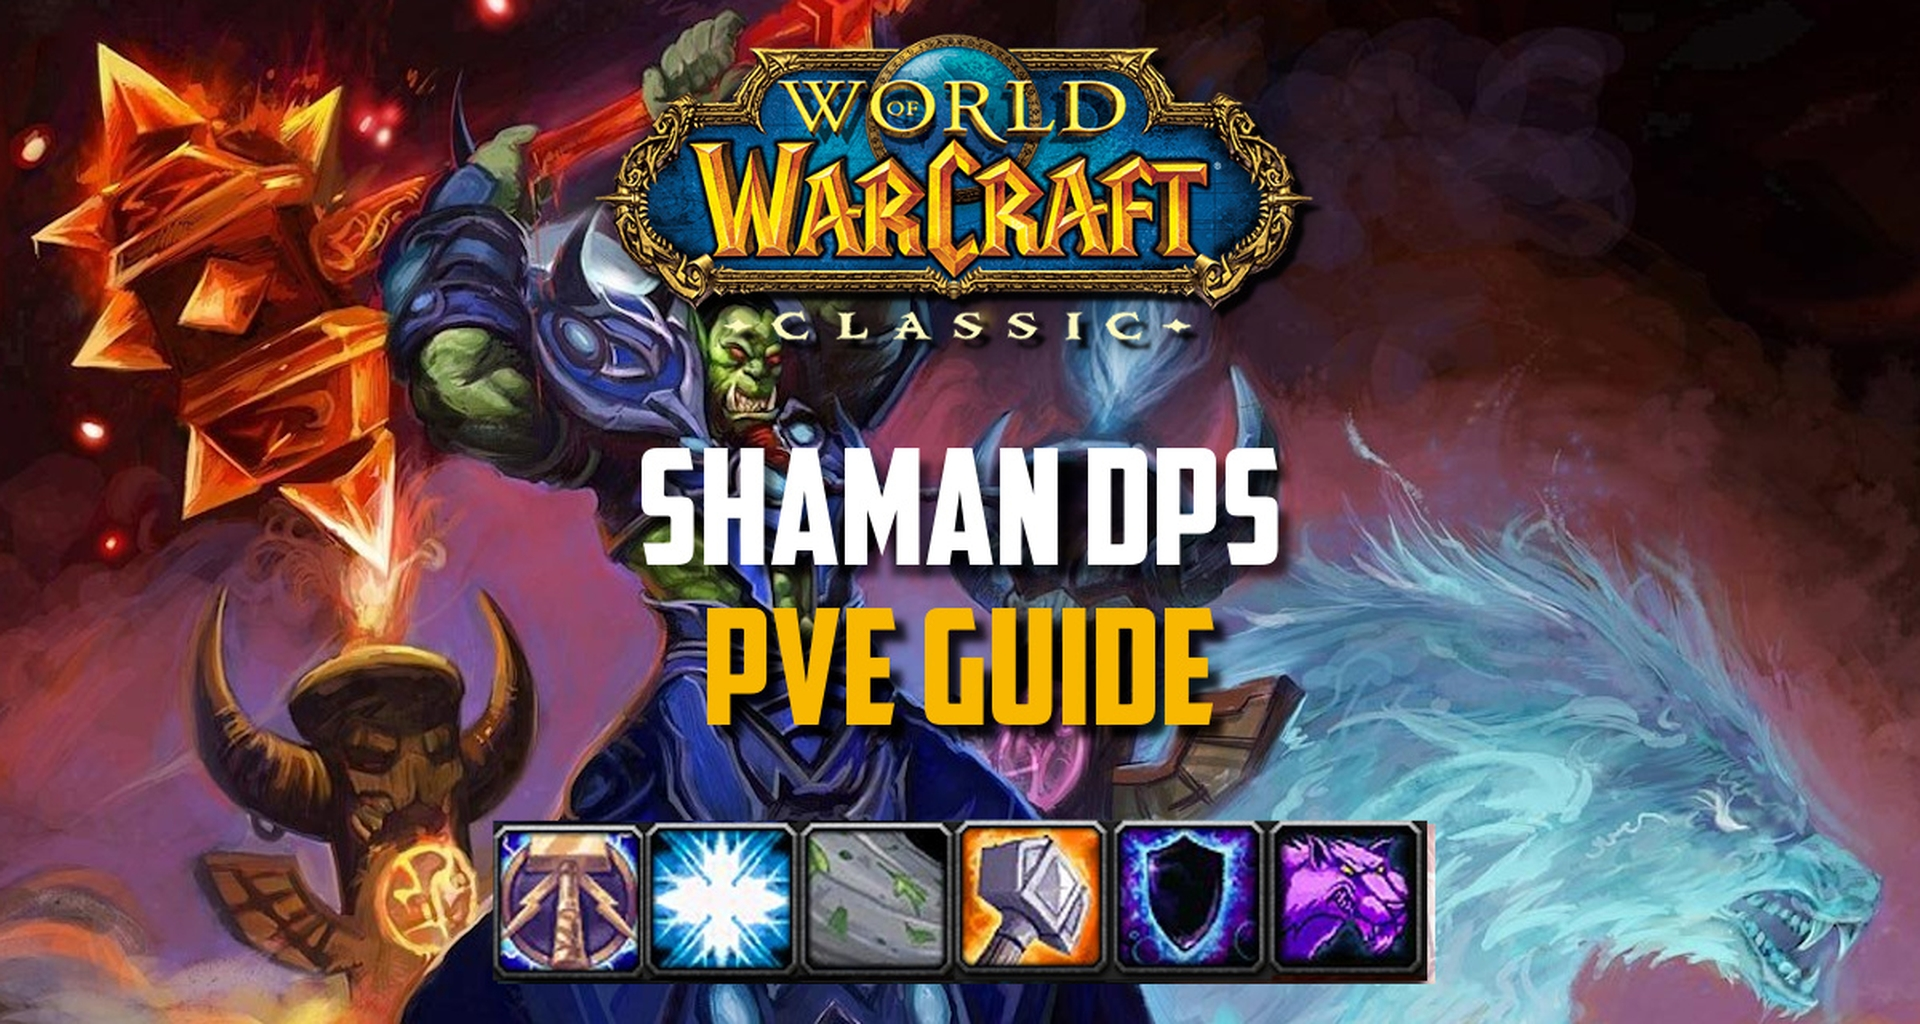 Enhancement Shaman PvE Guide - Spec, Rotation, Macros, BiS Gear